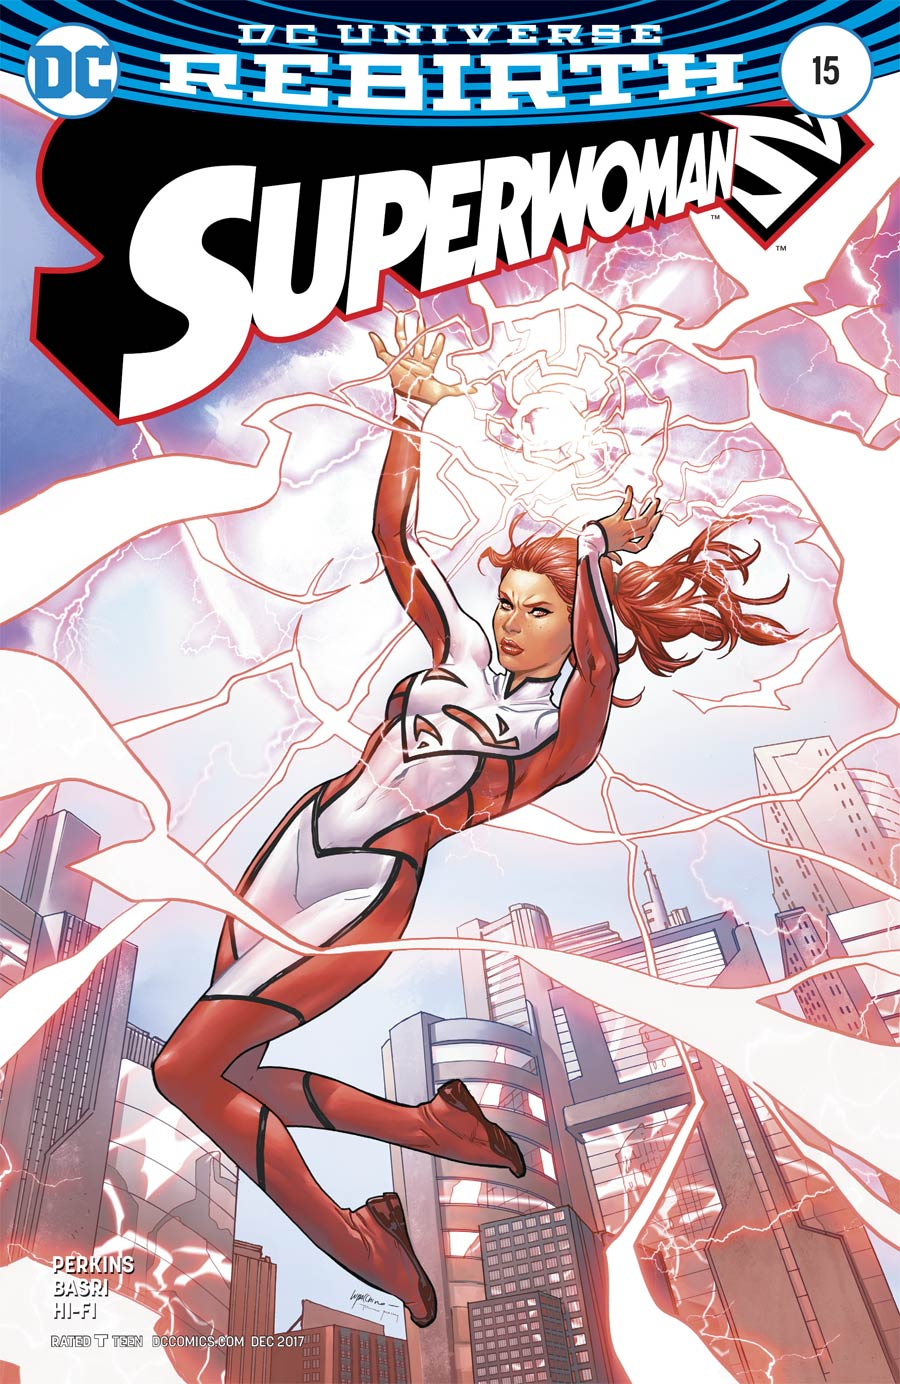 Superwoman #15